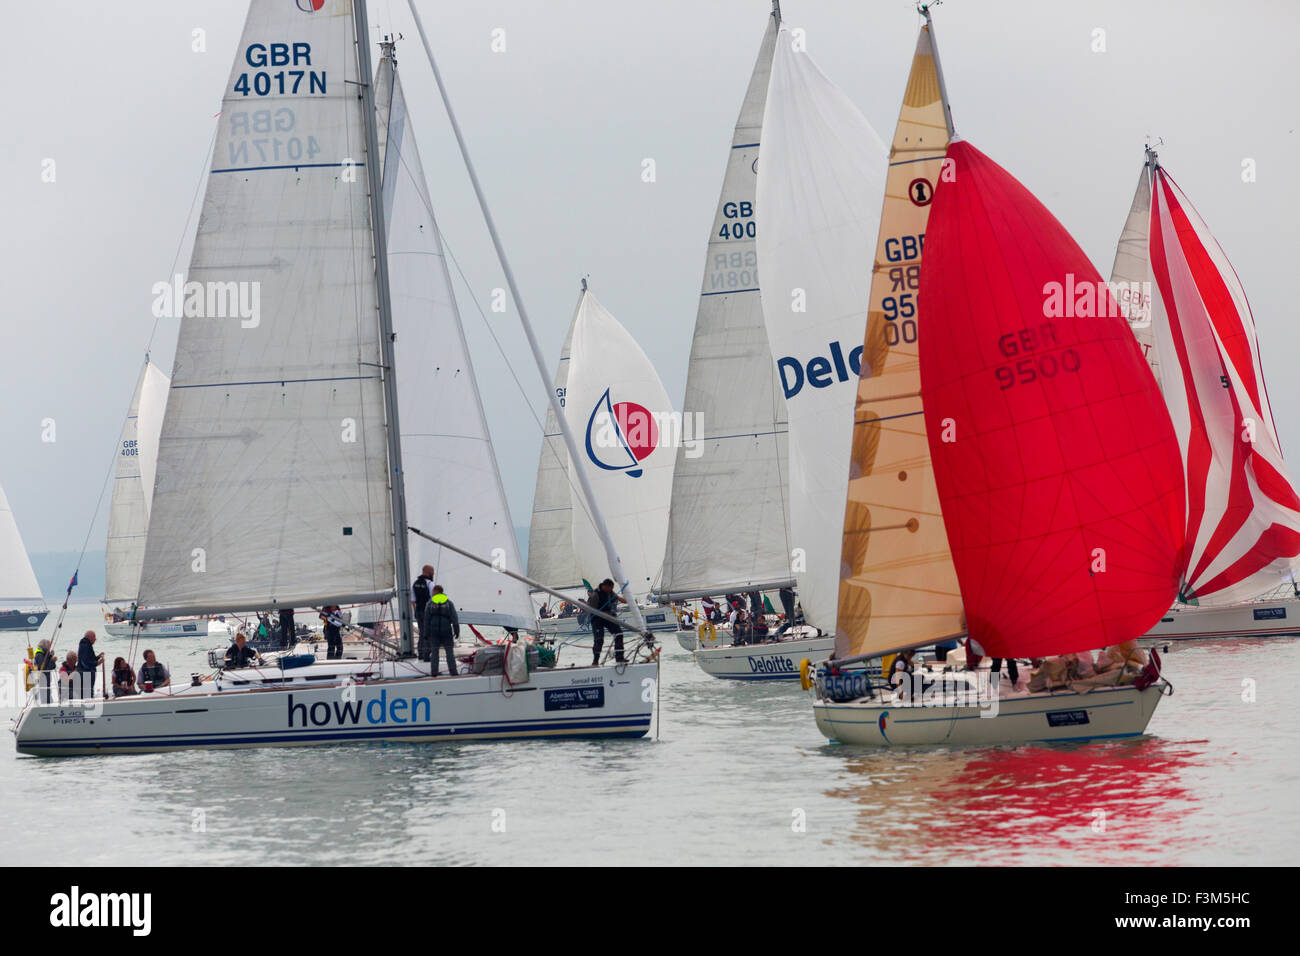 Yacht Racing, Shore side entertainments, Bands, Yacht Club scenes, 2015, Cowes Week, Isle of Wight, England, UK, - Stock Image